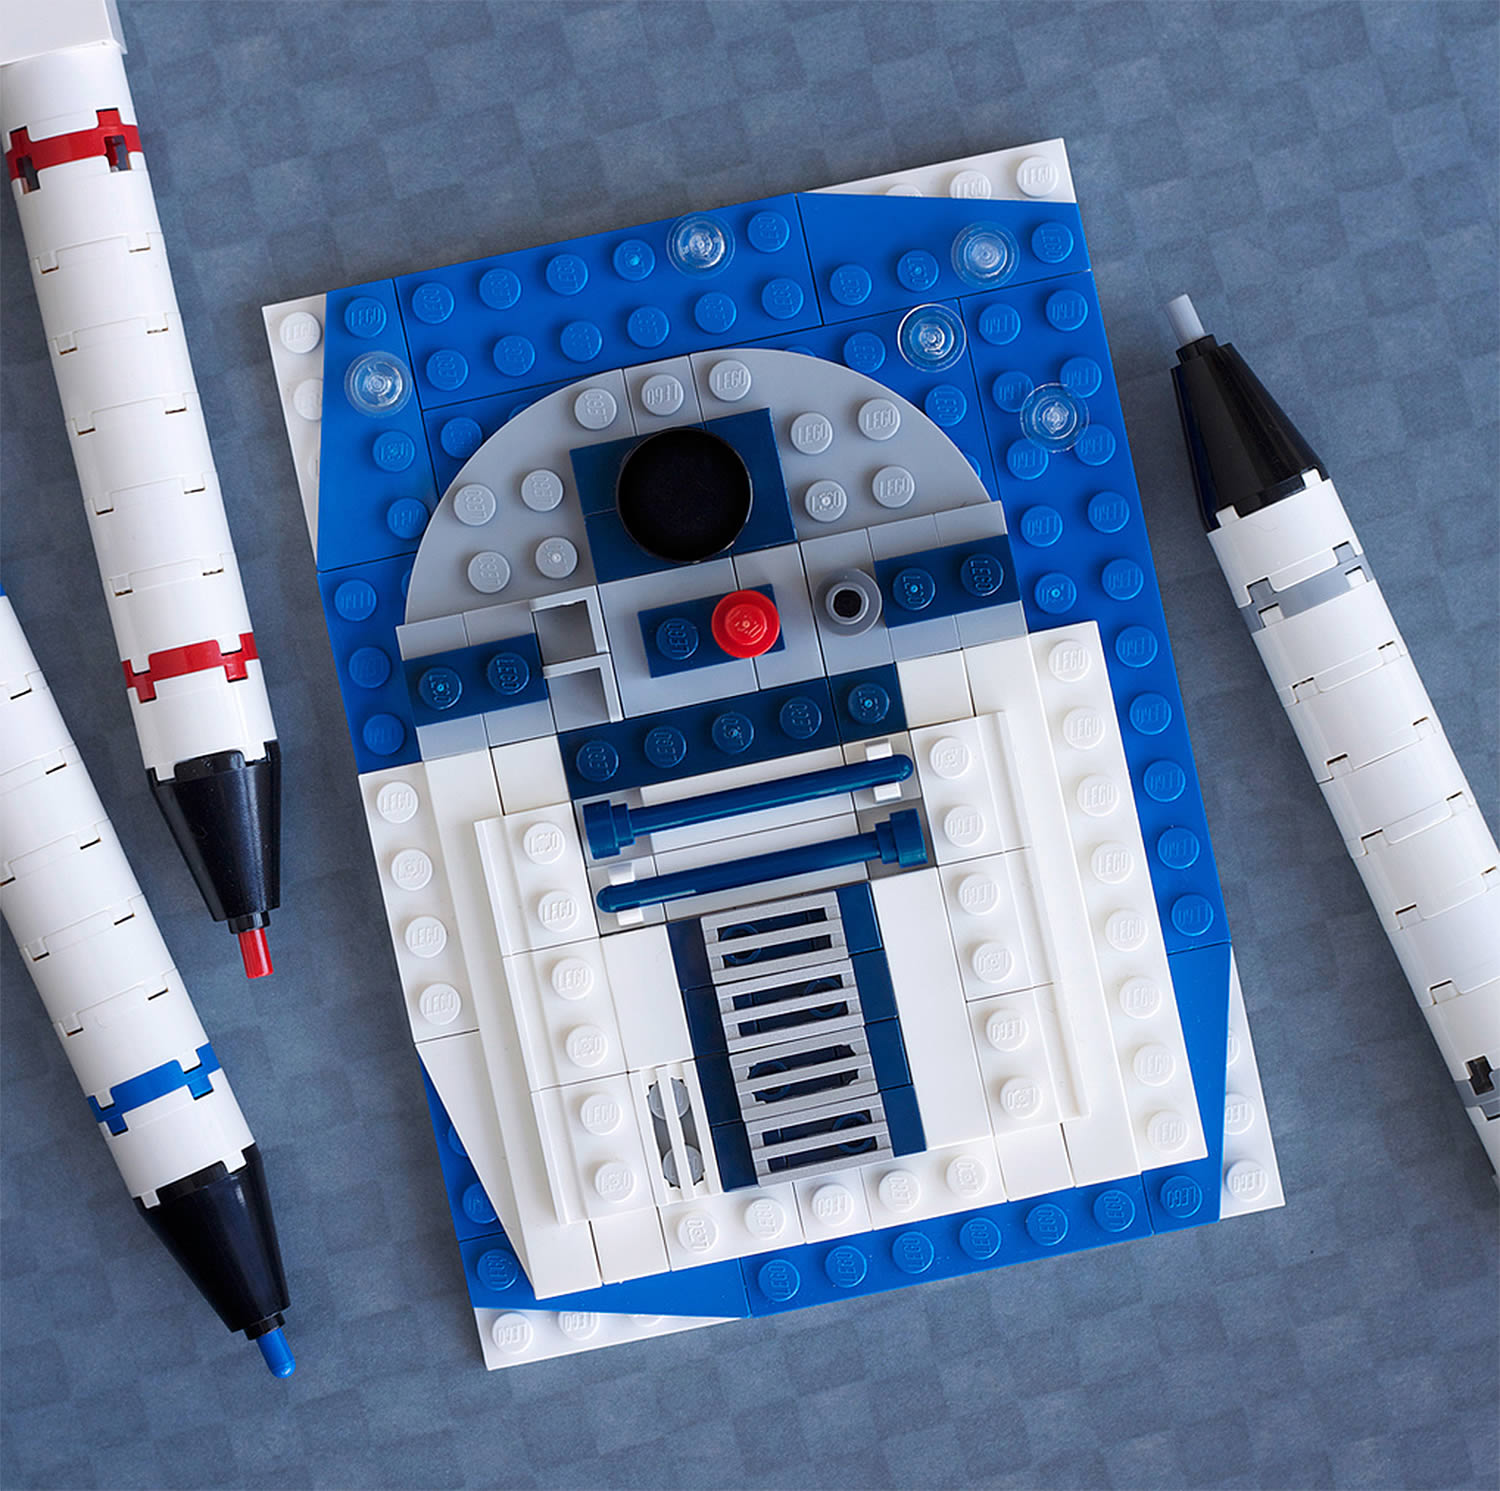 bleep bloop, r2d2, star wars lego art by Chris McVeigh